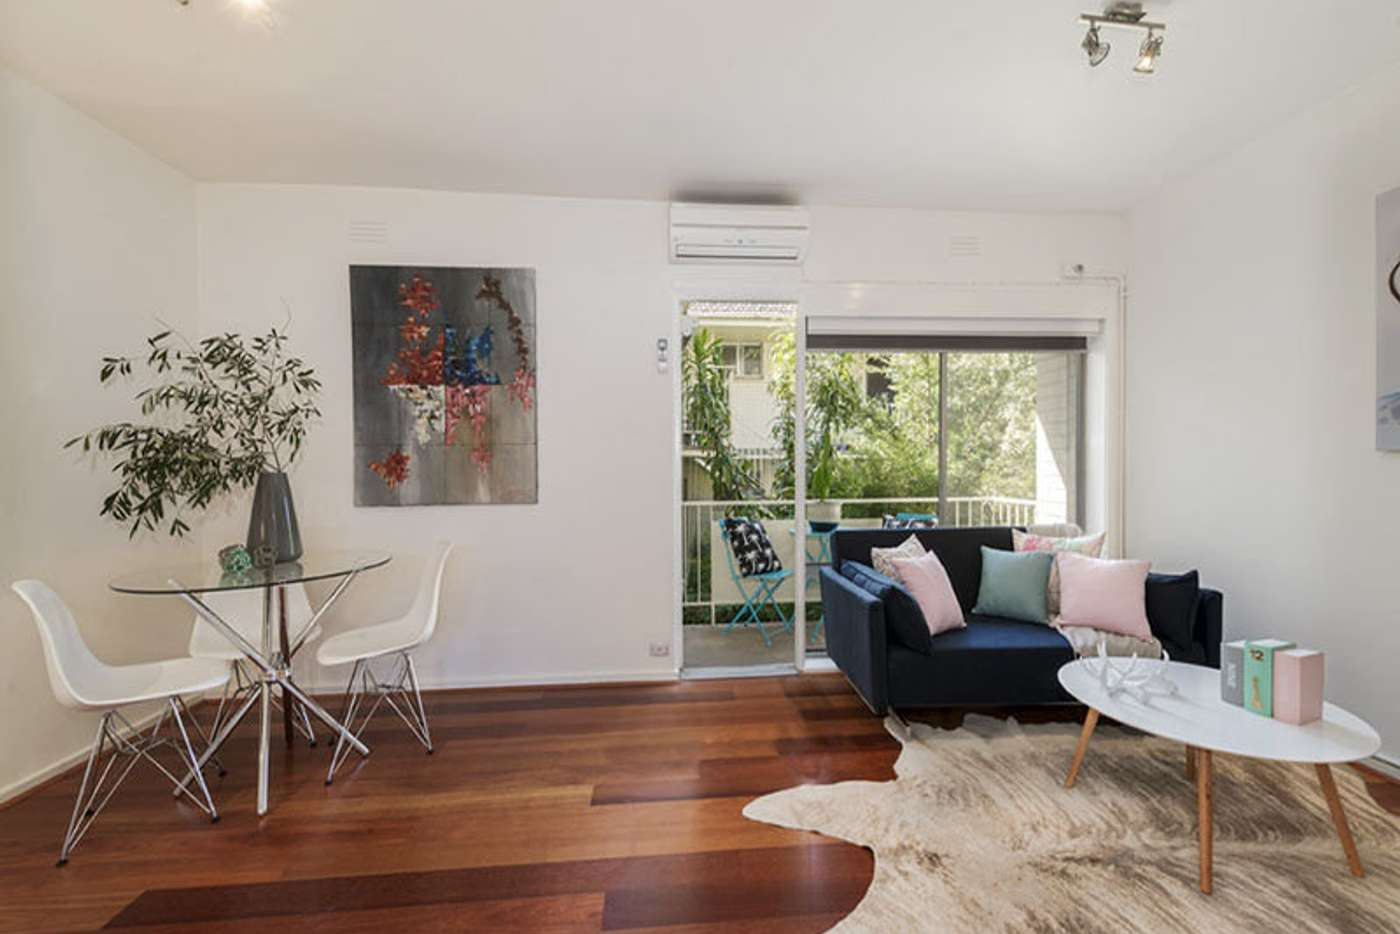 Main view of Homely apartment listing, 18/481 Kooyong Road, Elsternwick VIC 3185